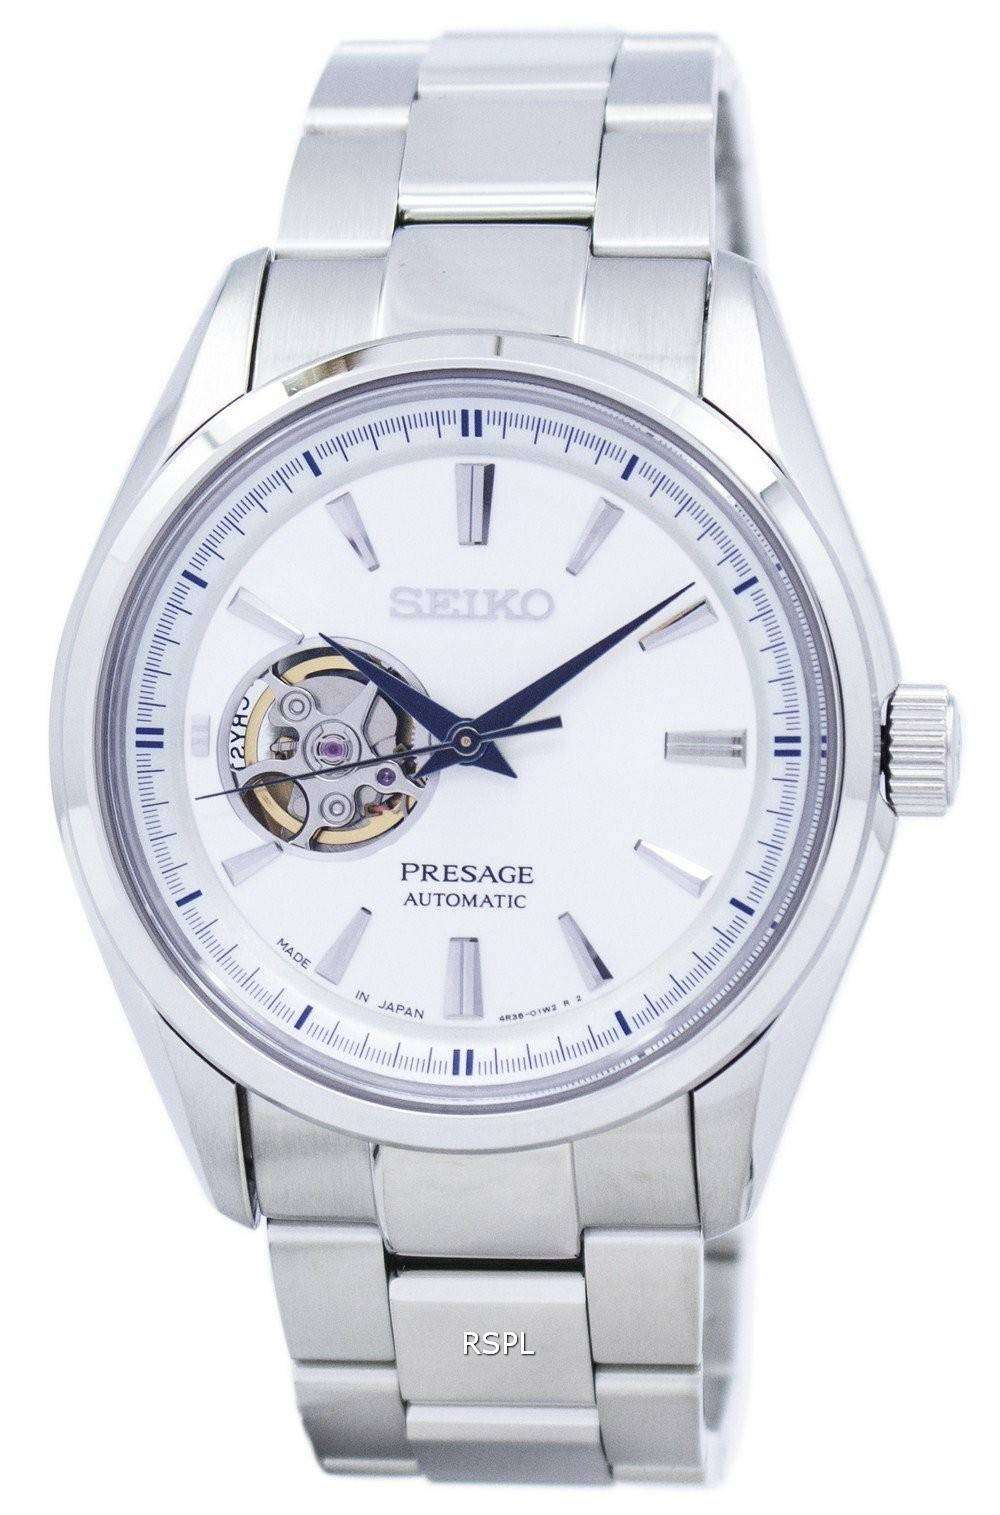 Seiko presage automatic japan made ssa355 ssa355j1 ssa355j men 39 s watch downunderwatches for Watches japan